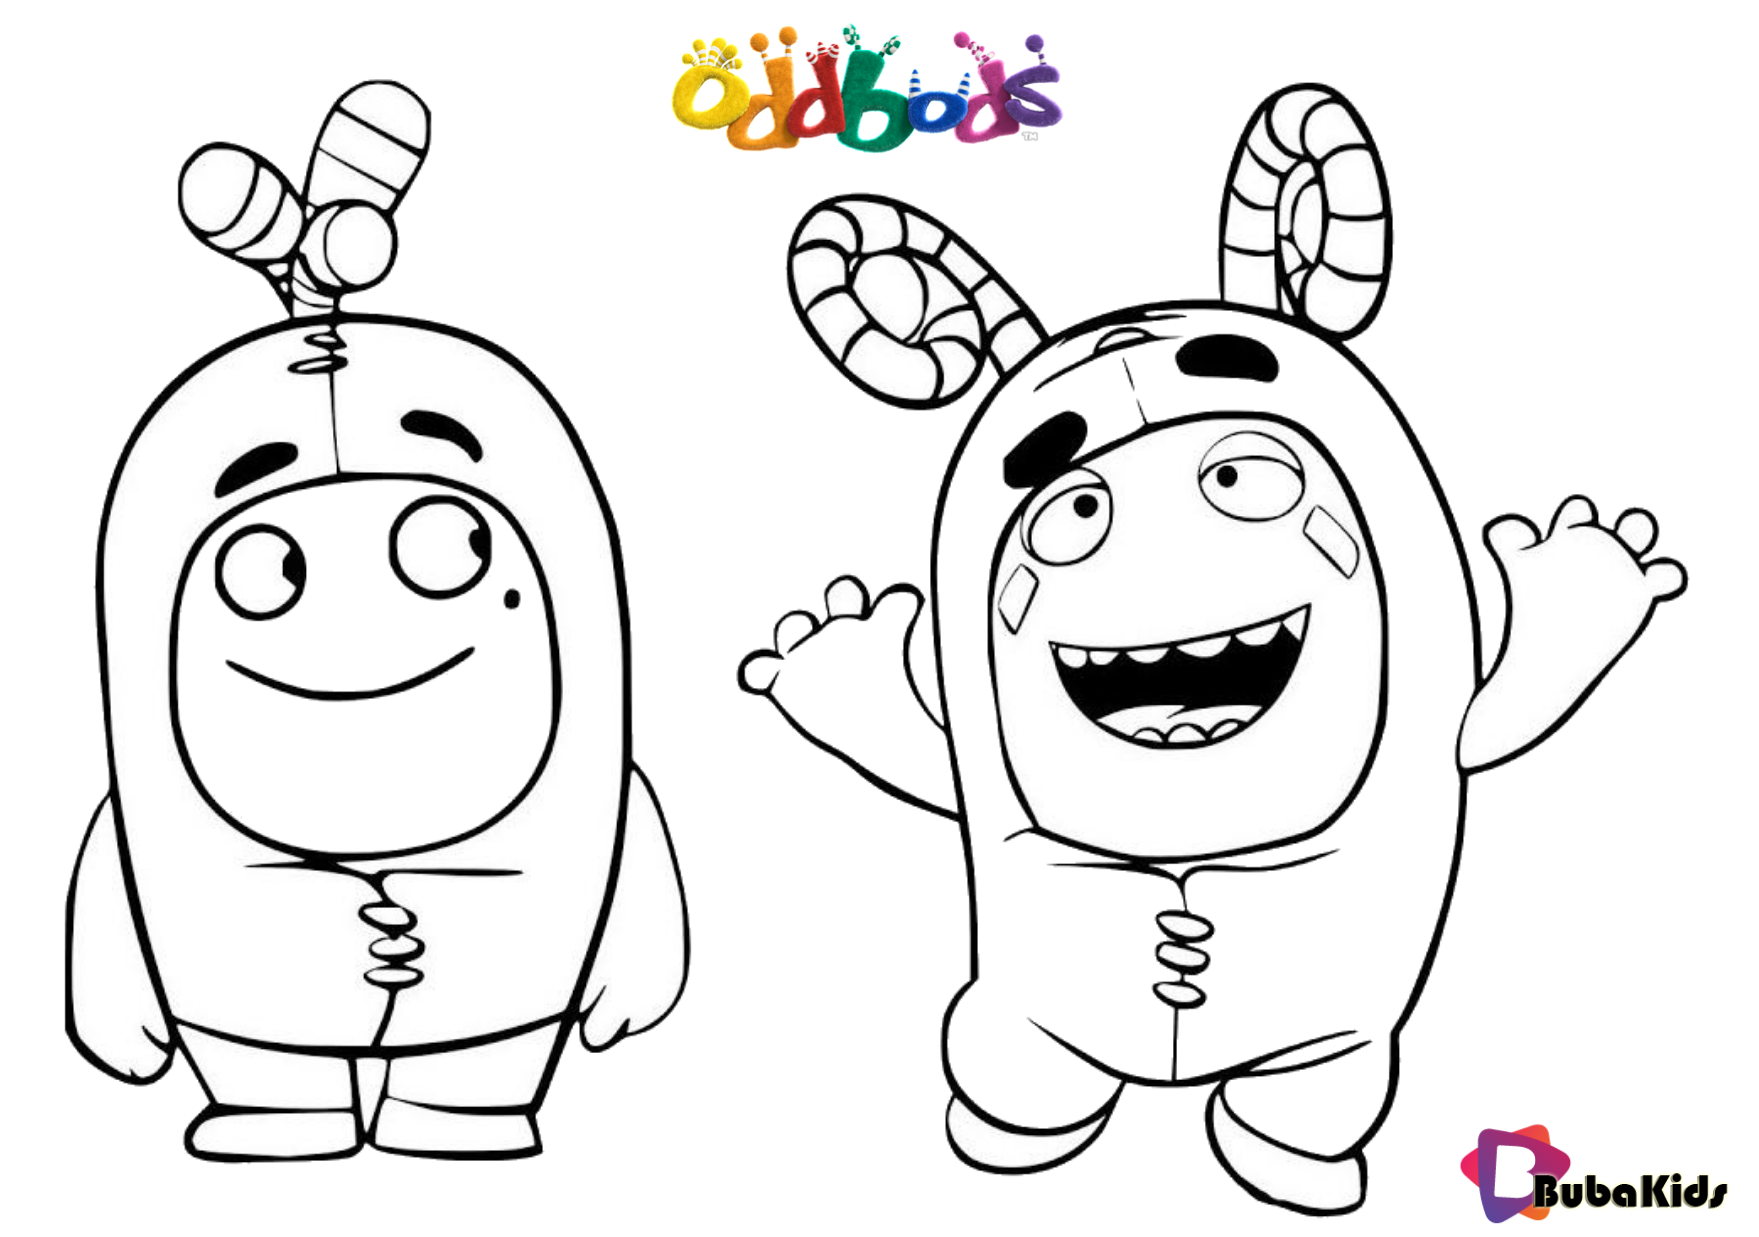 Oddbods tv serials coloring page for kids Wallpaper